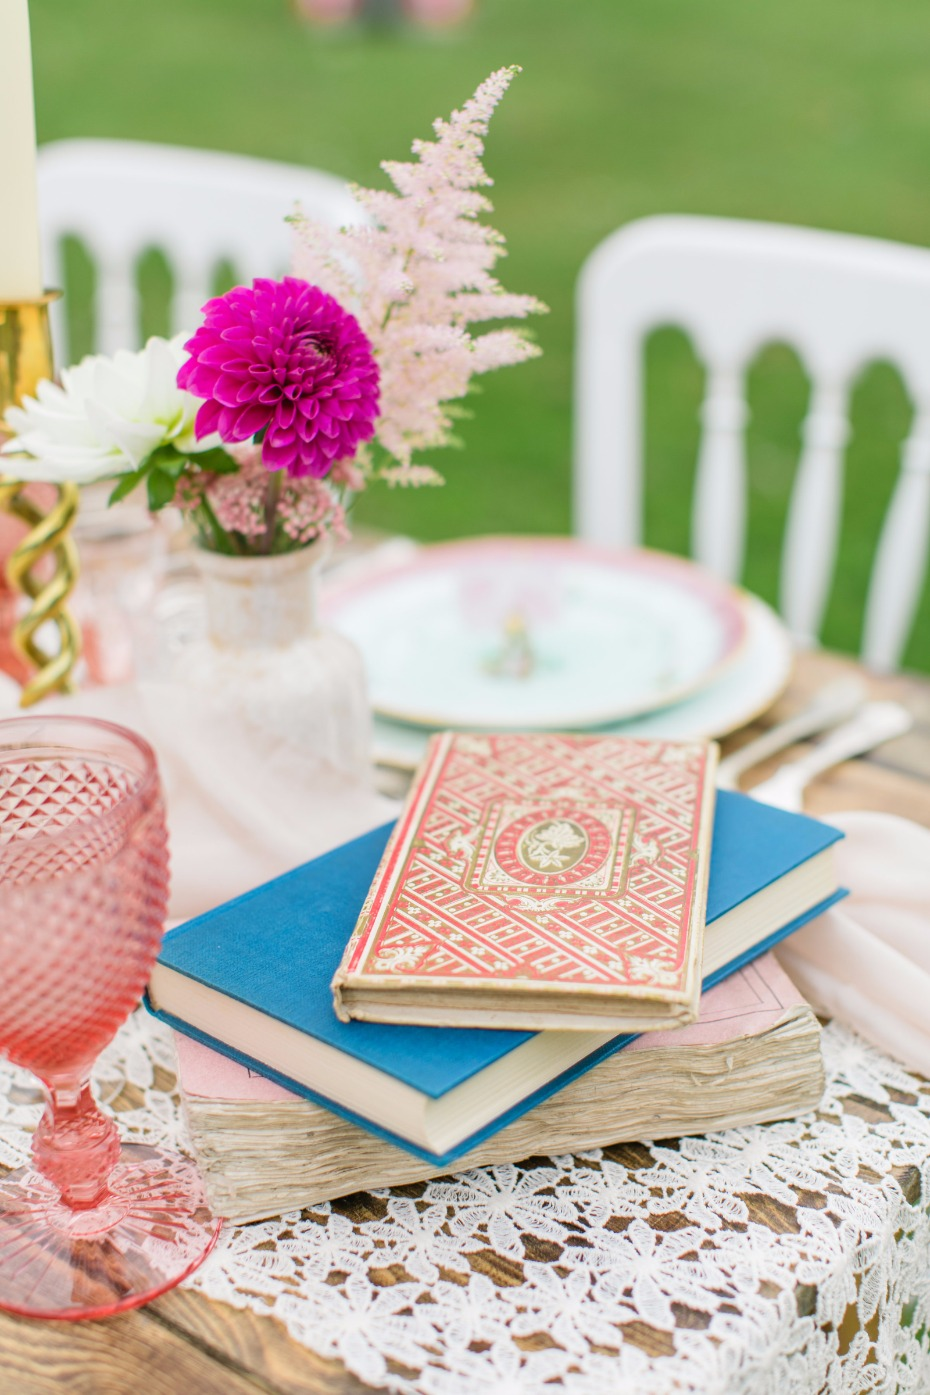 Create a centerpiece with vintage books